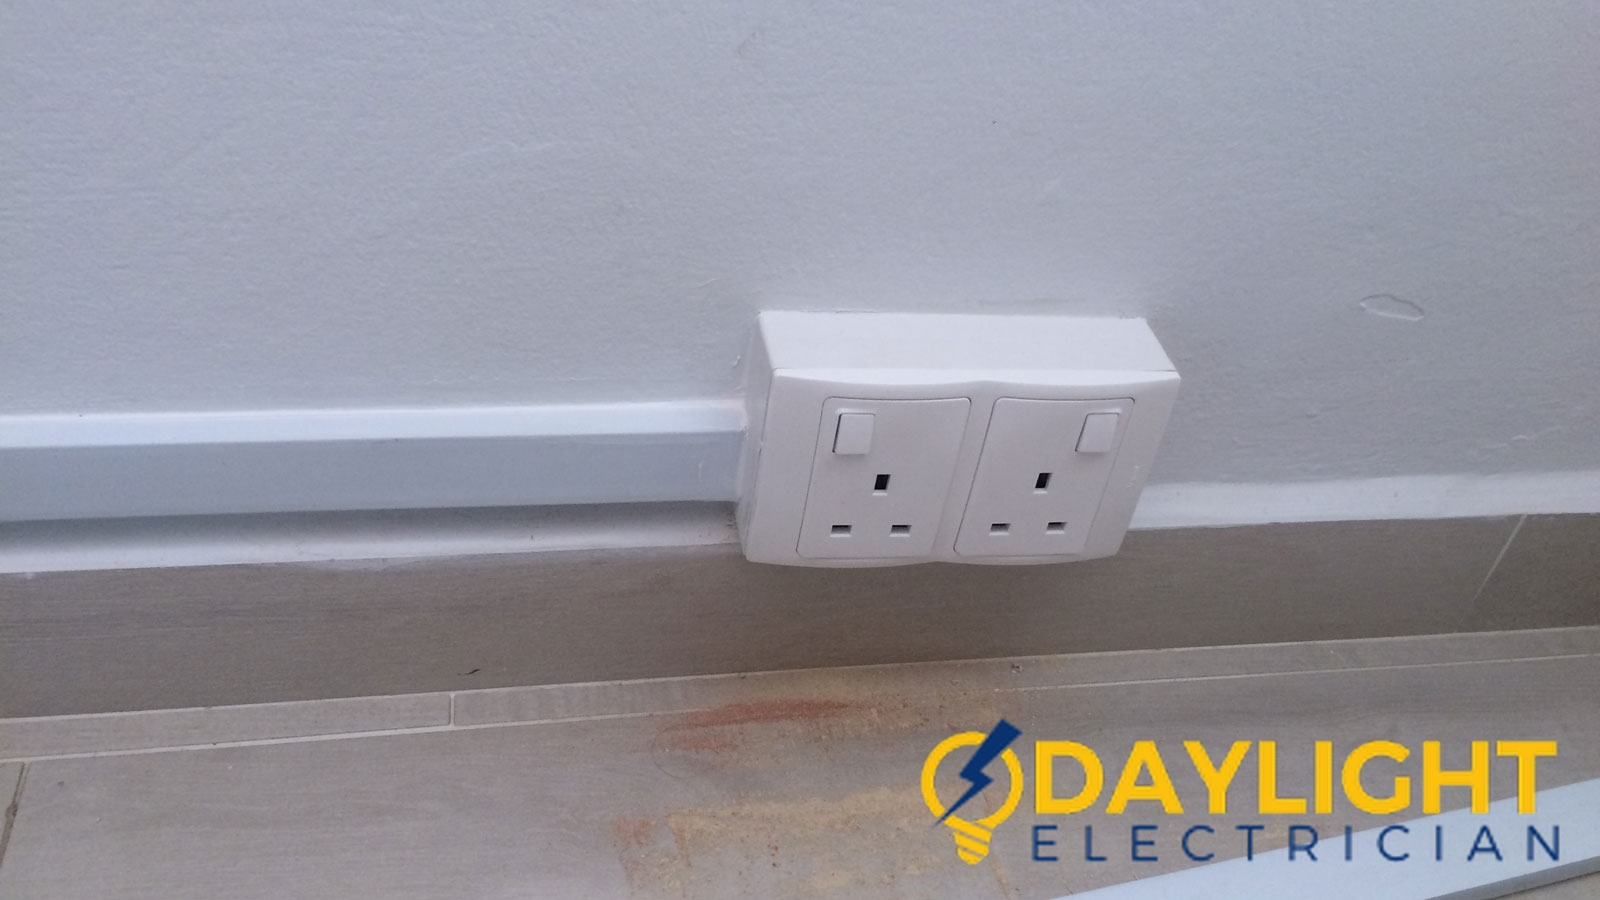 power socket installation daylight electrician singapore landed sembawang wm